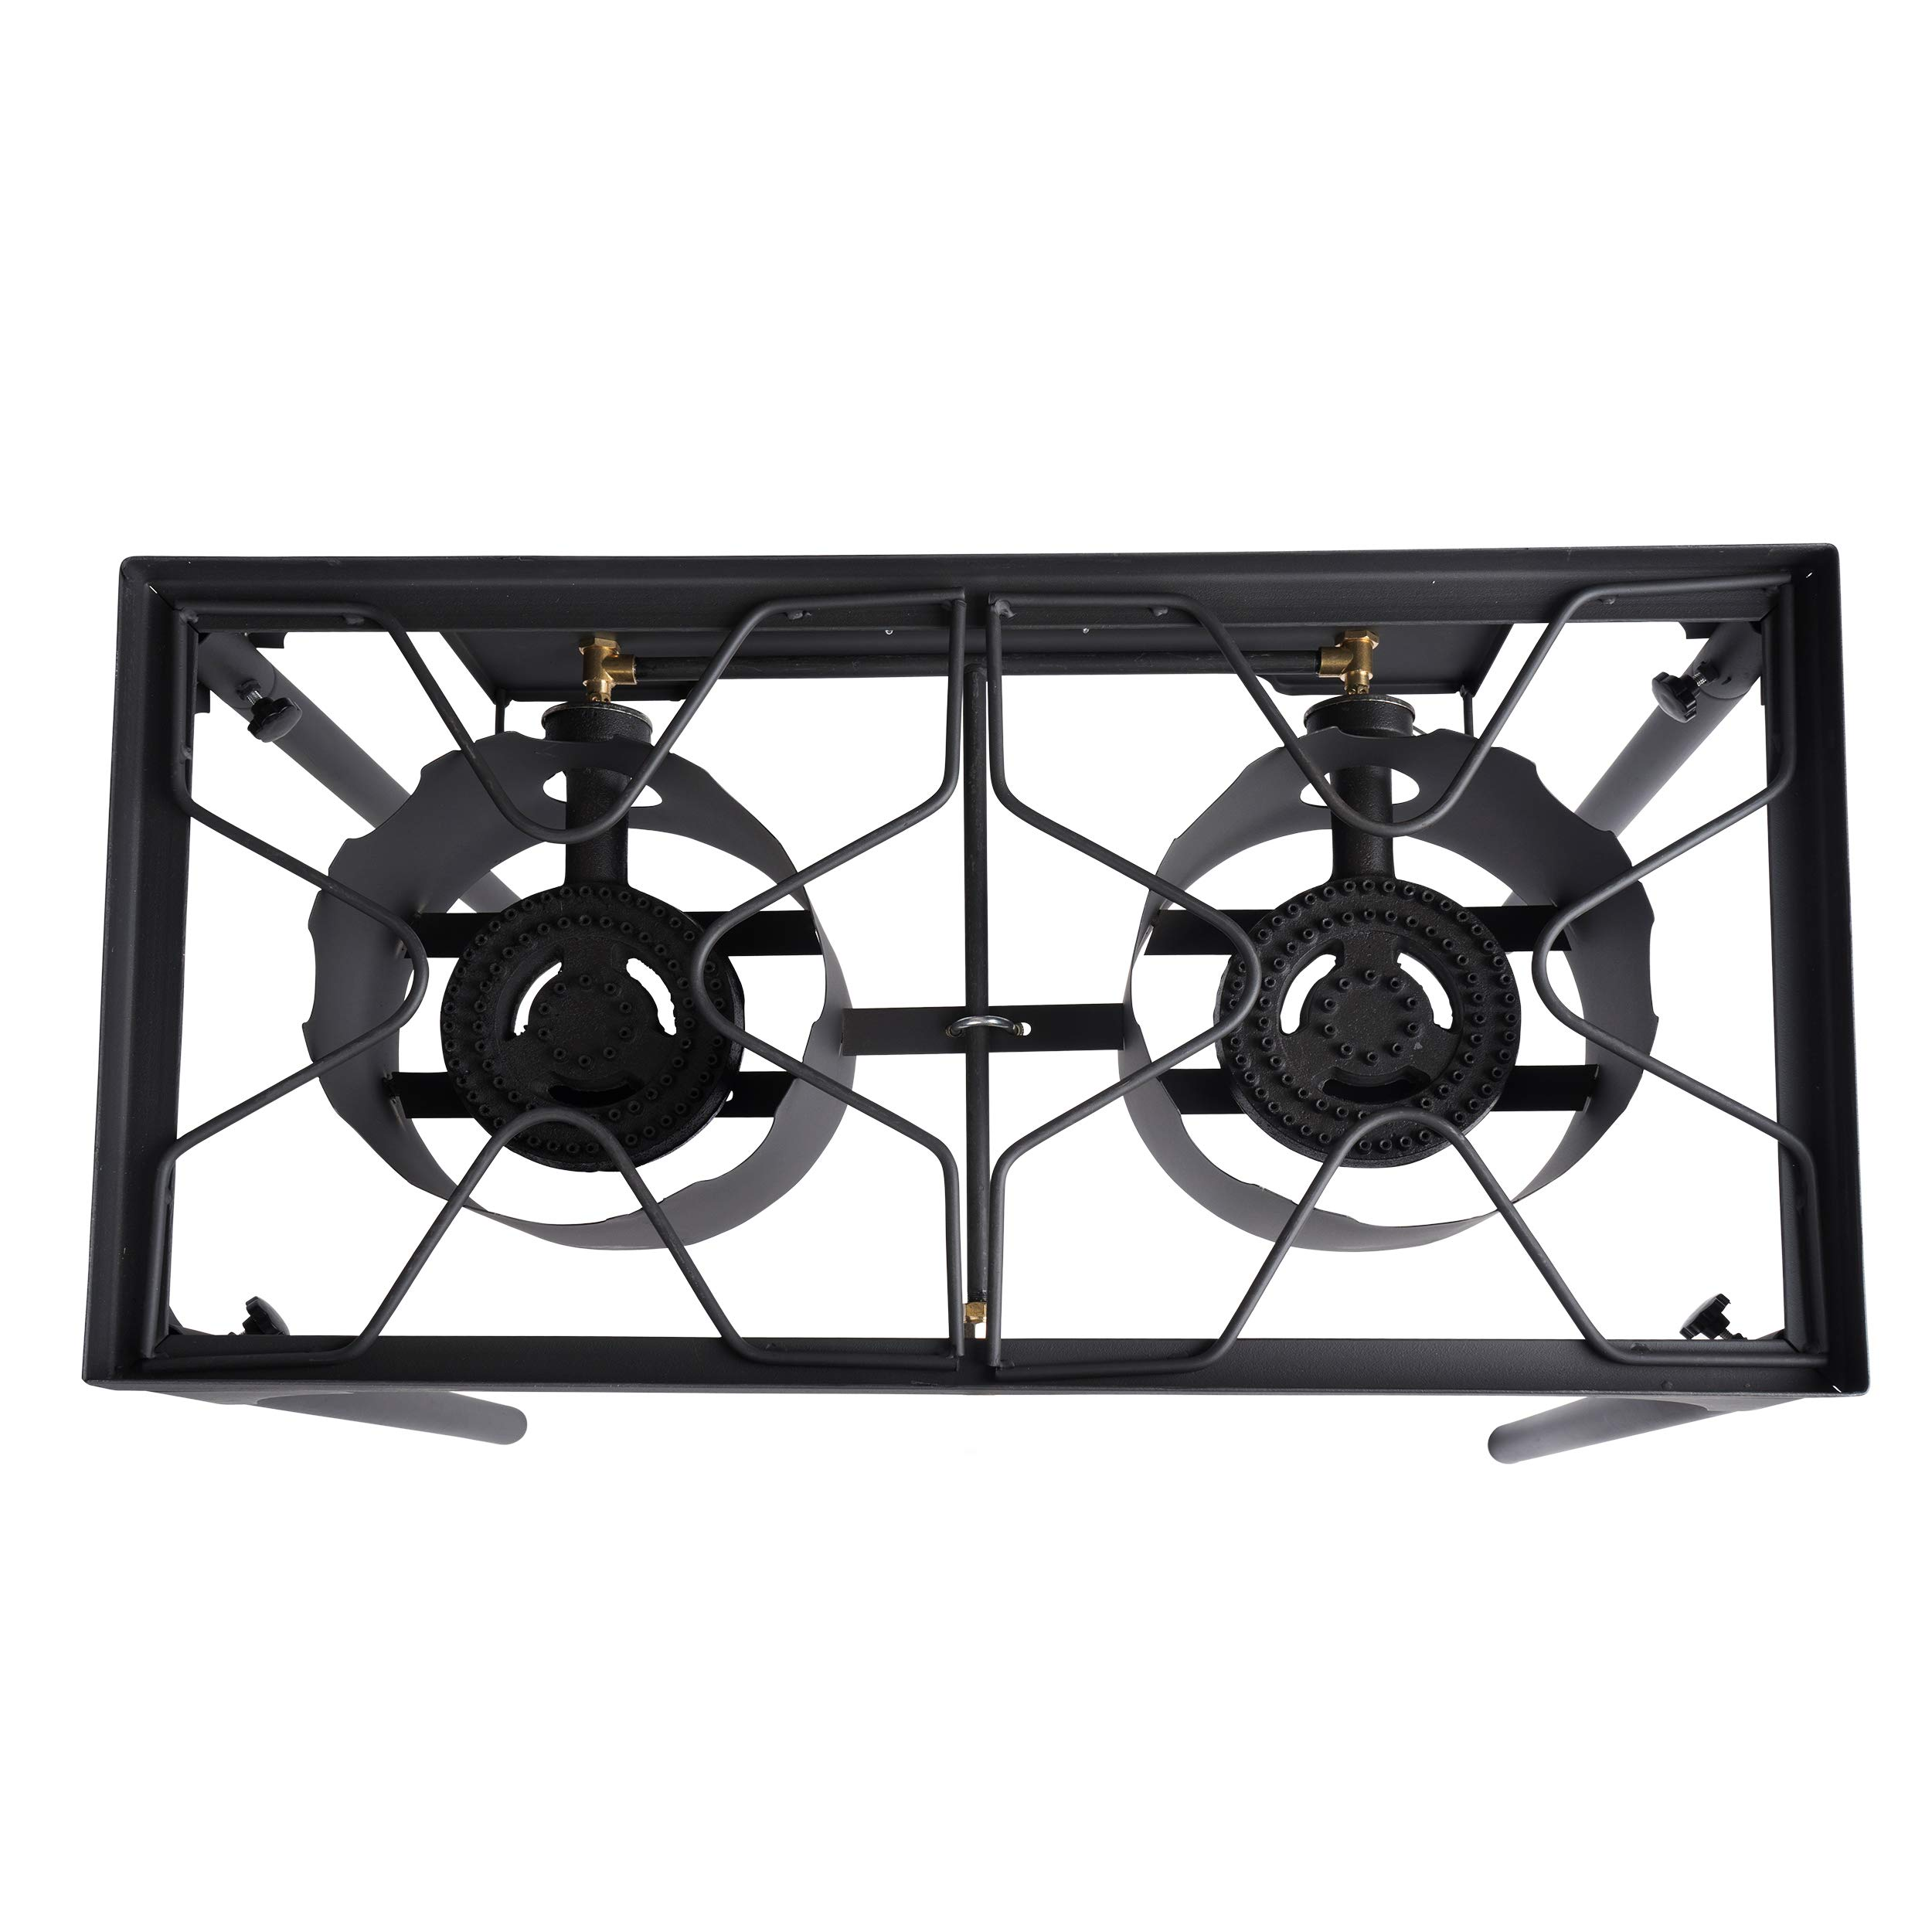 Leaderware High Pressure Gas Cooking Stove with 2 Burners, Outdoor Camping Kitchen Accessories by Leaderware (Image #2)